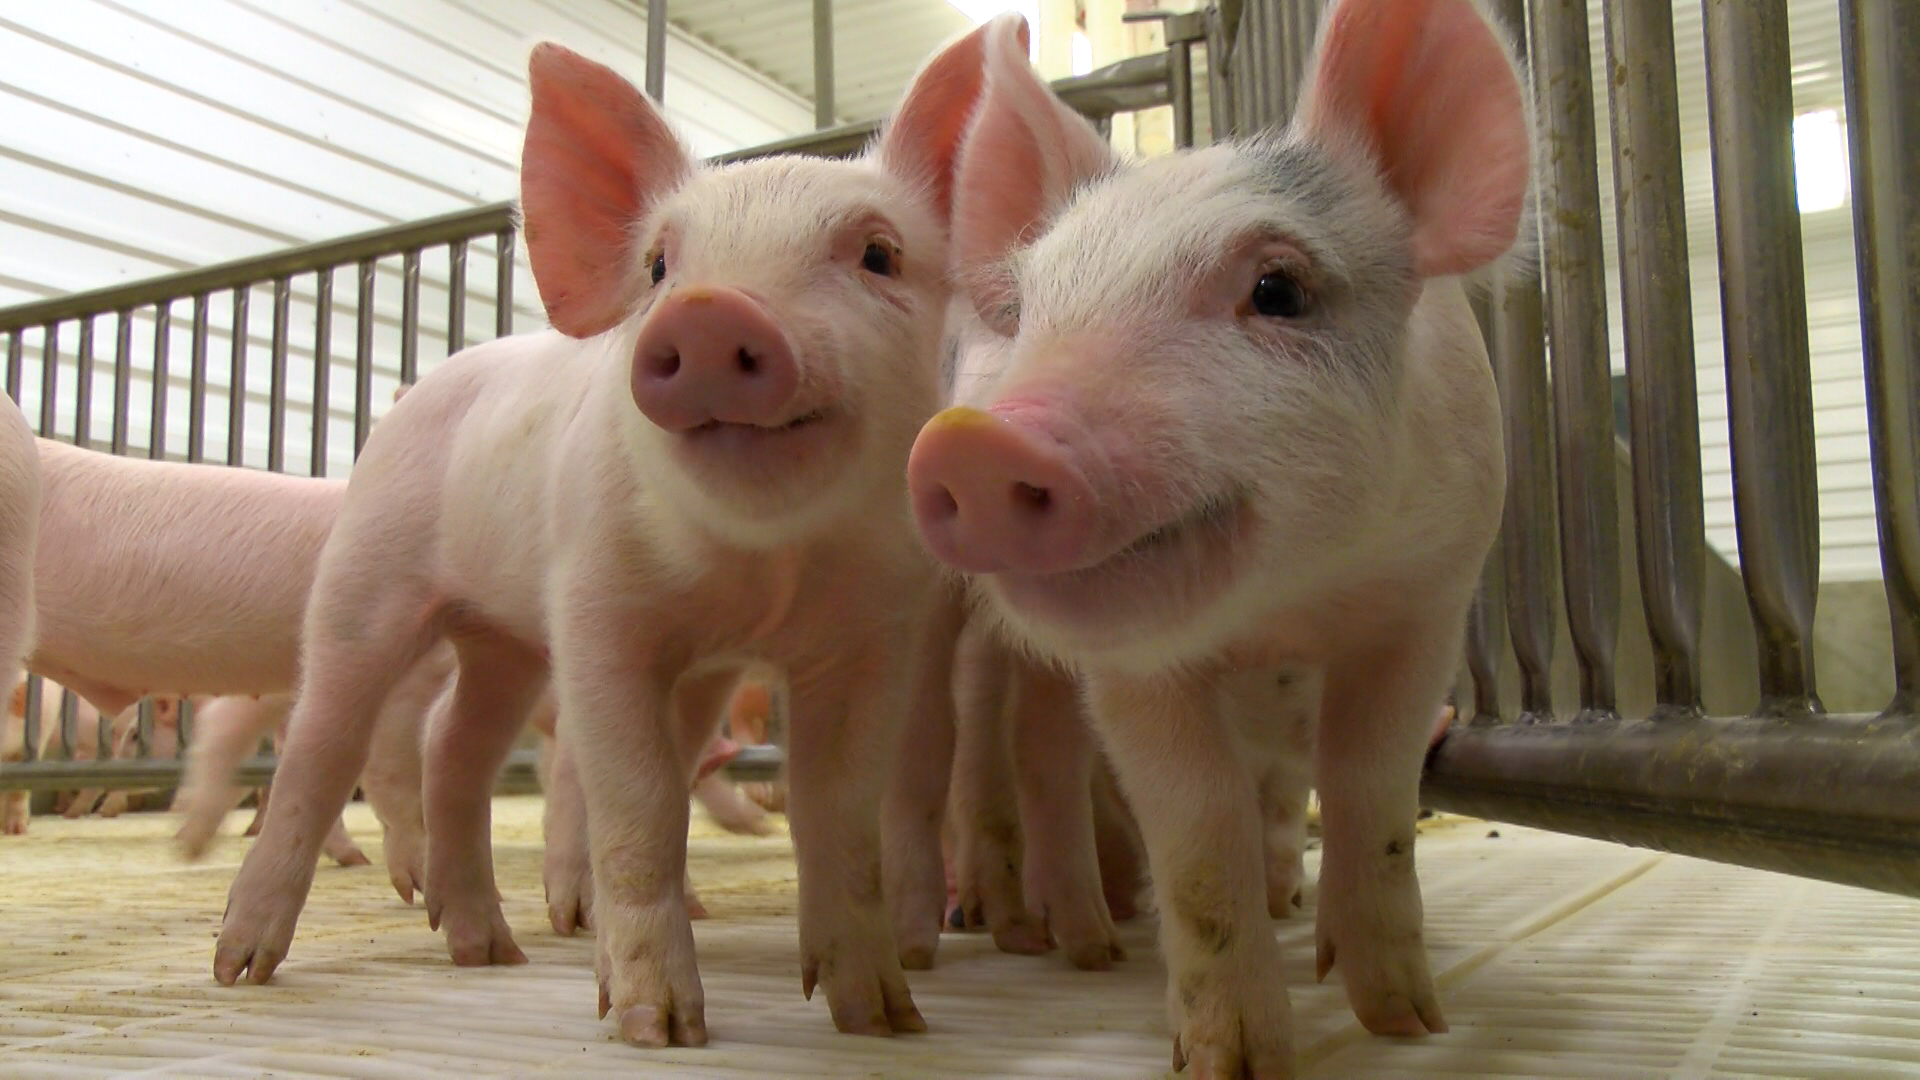 Spread Of Pig Virus Cancels 4 H Swine Shows For